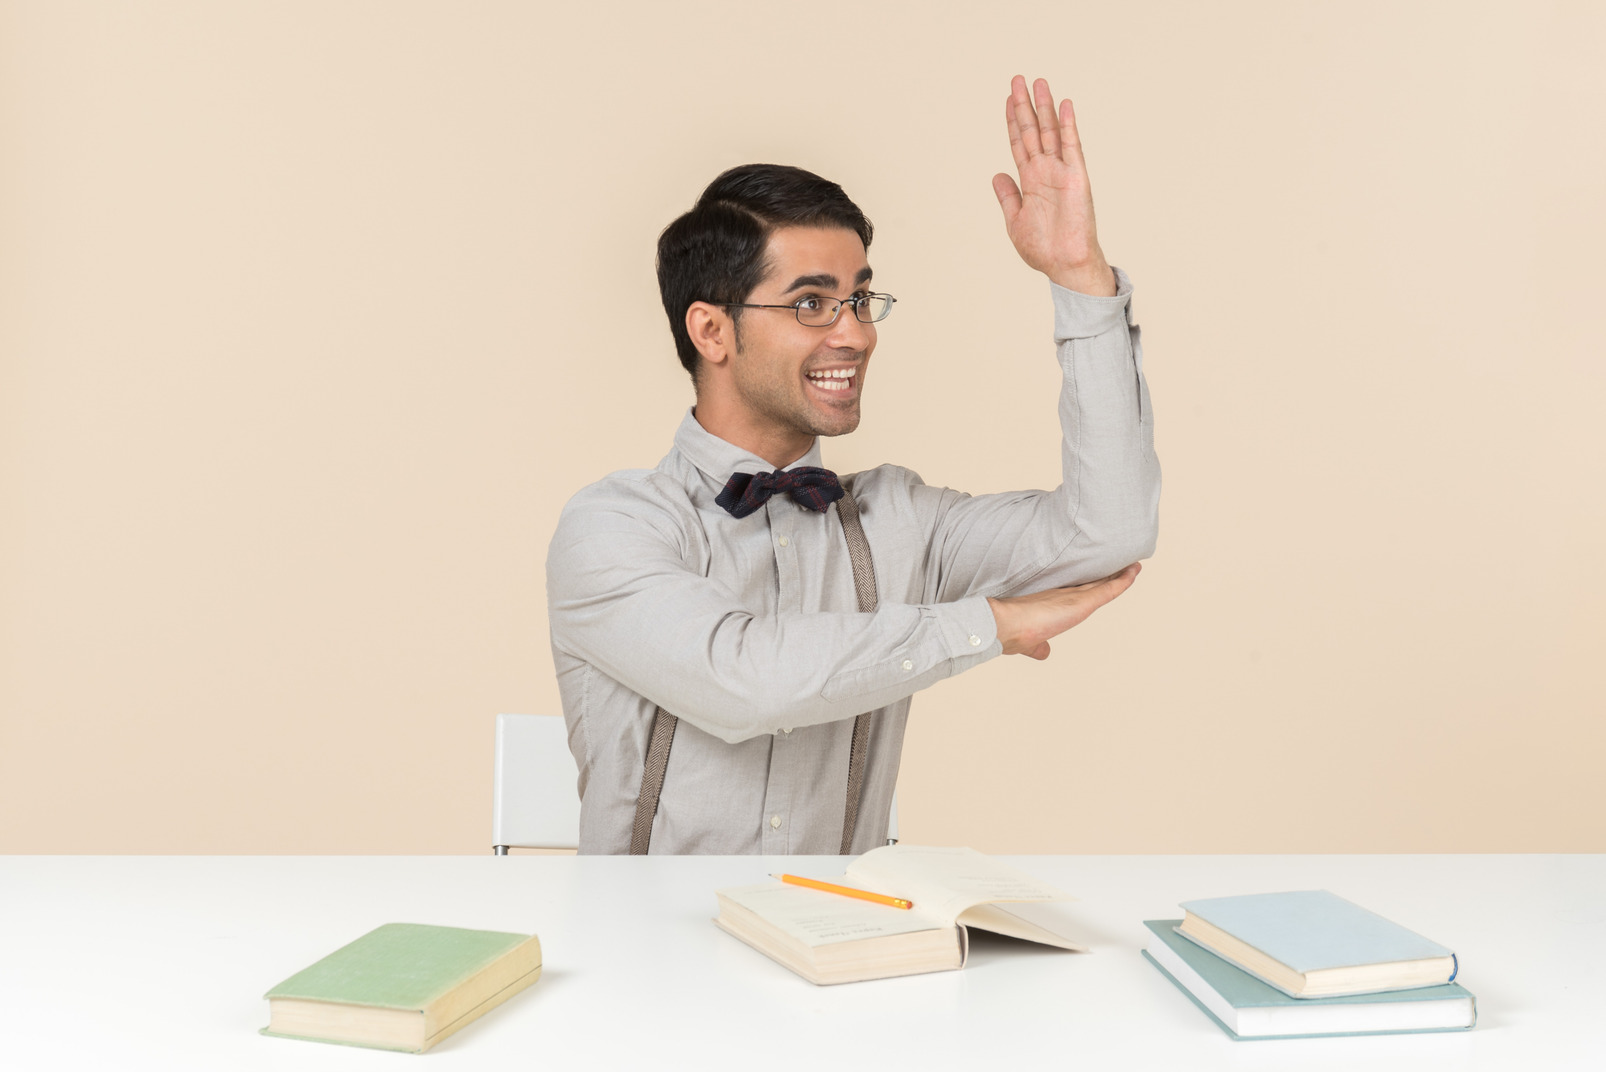 Adult student sitting at the table and raising a hand